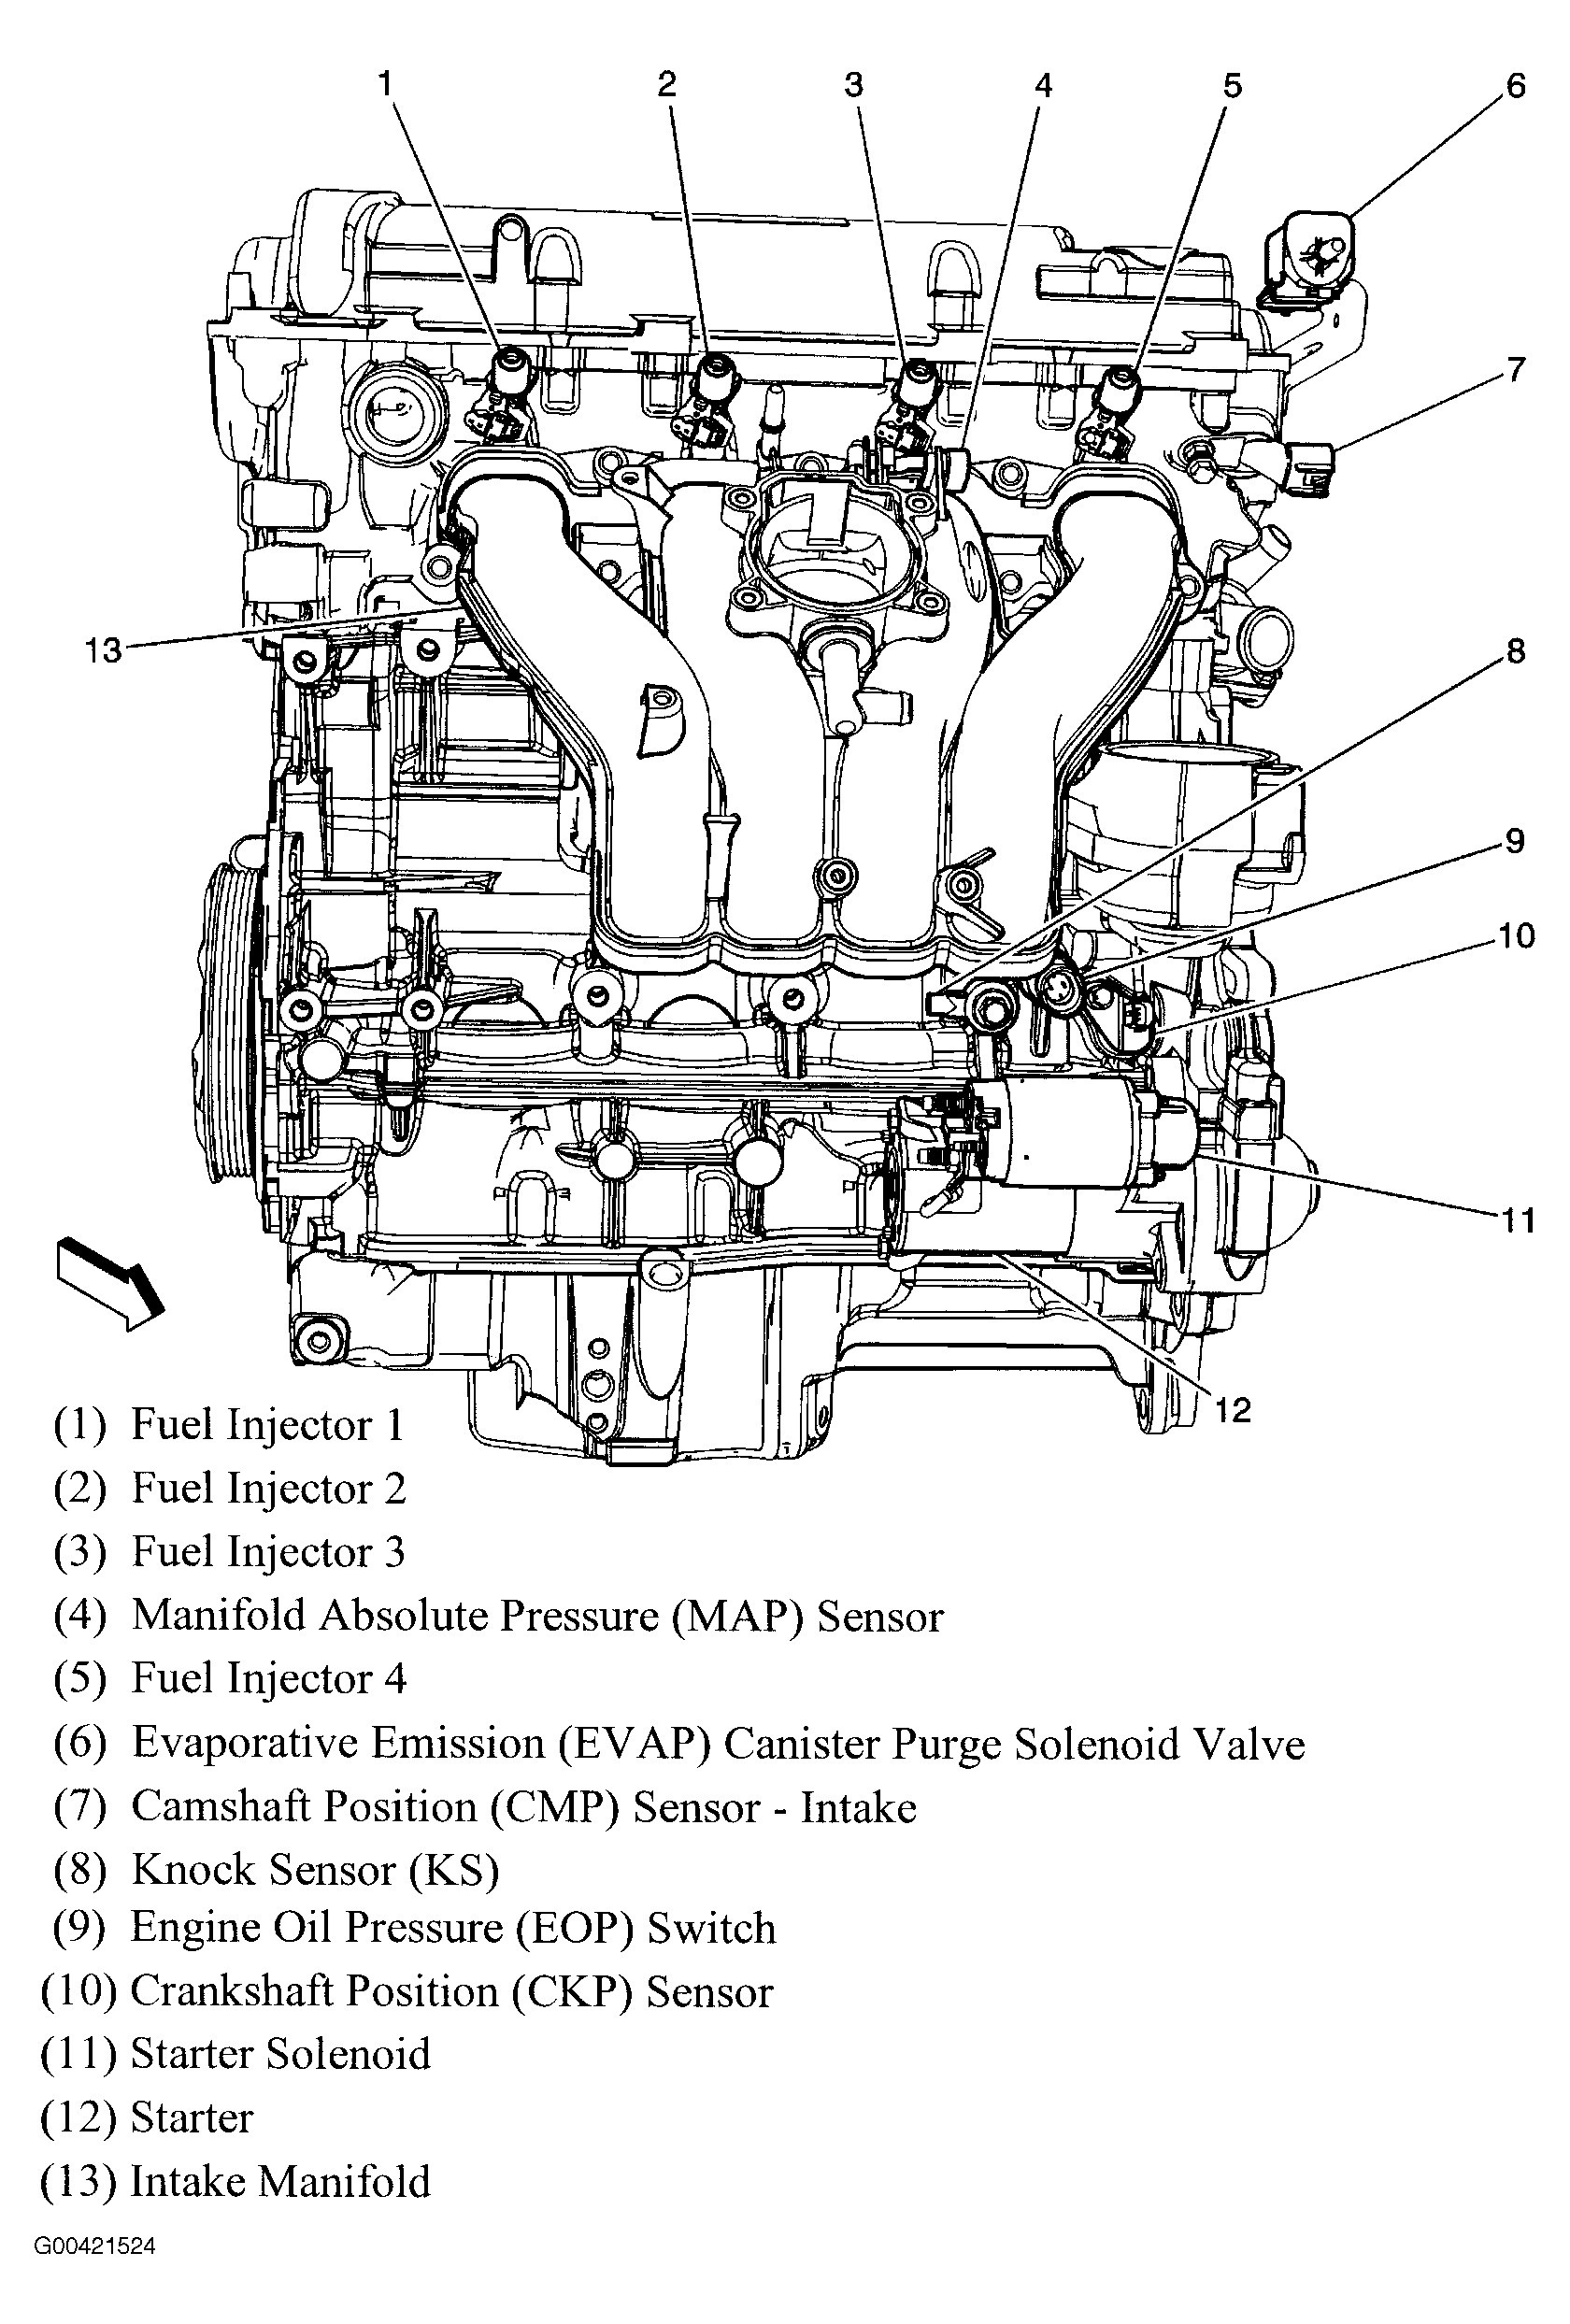 hight resolution of buick 3 8l engine coolant diagram wiring diagram paper02 buick 3 1 engine diagram wiring diagram